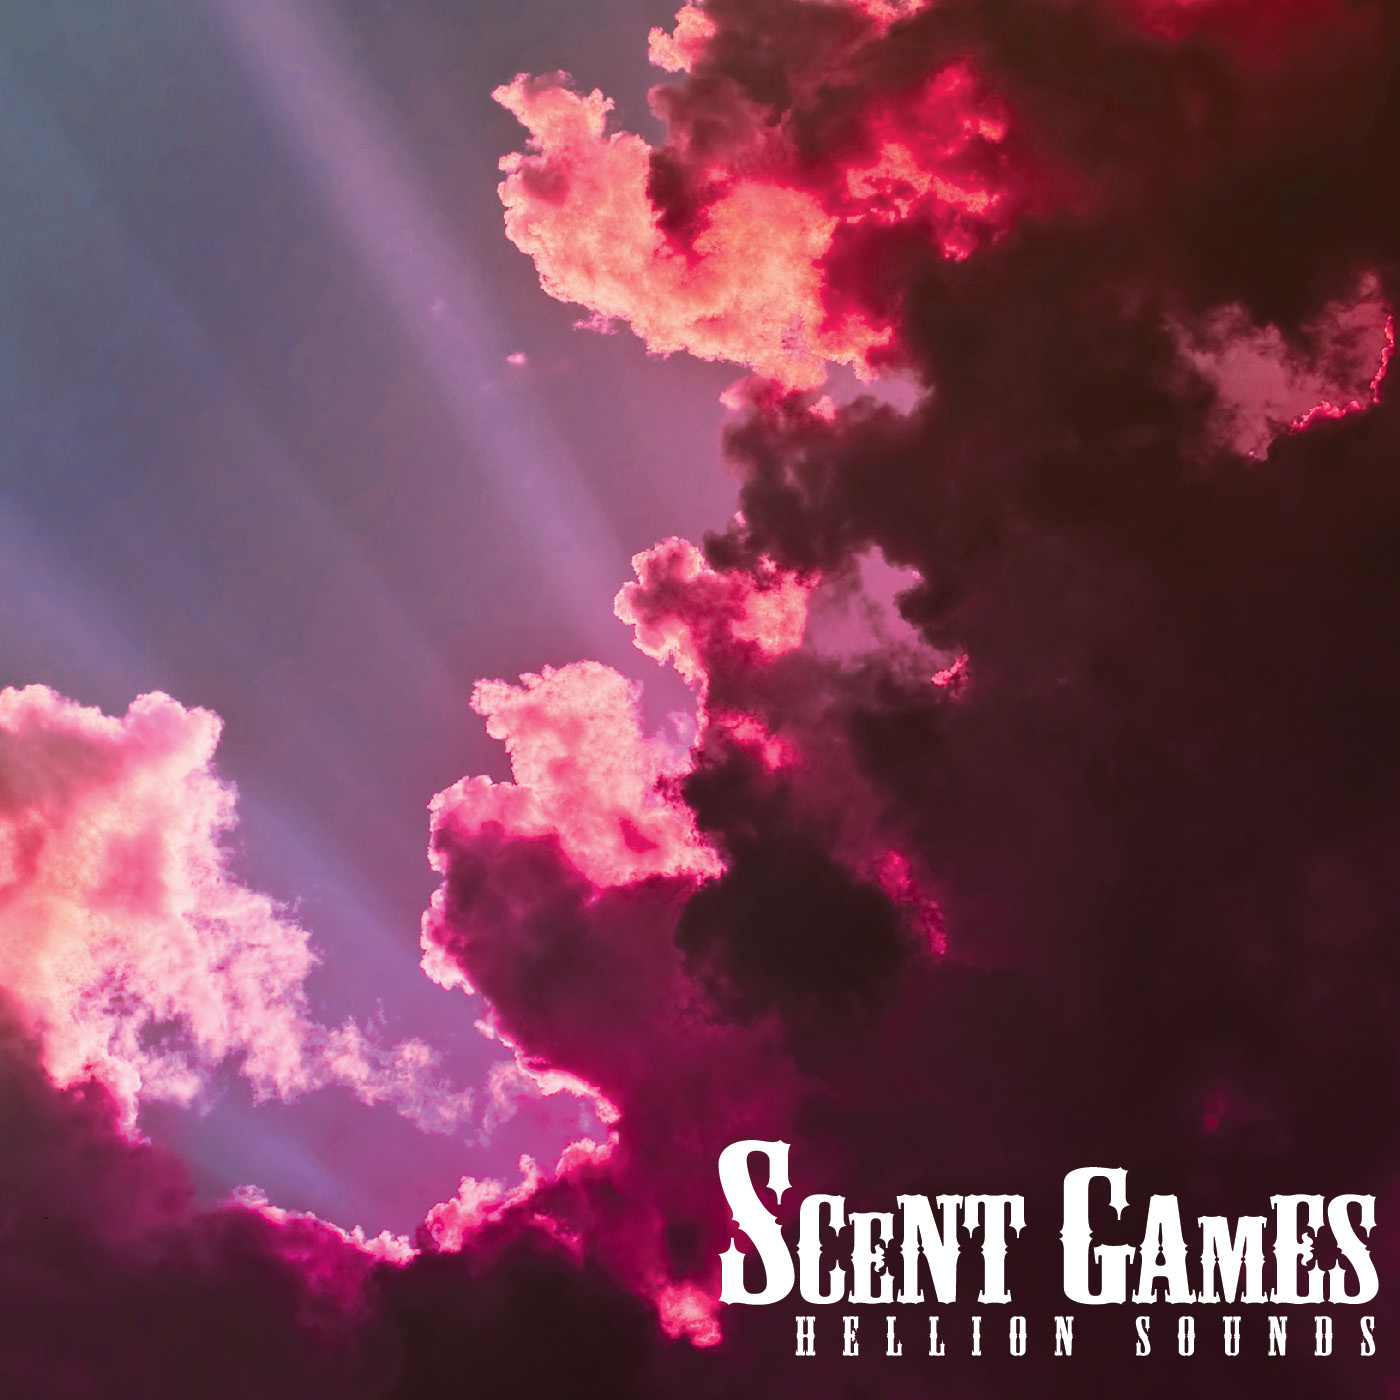 Hellion Sounds「Scent Games」委託中